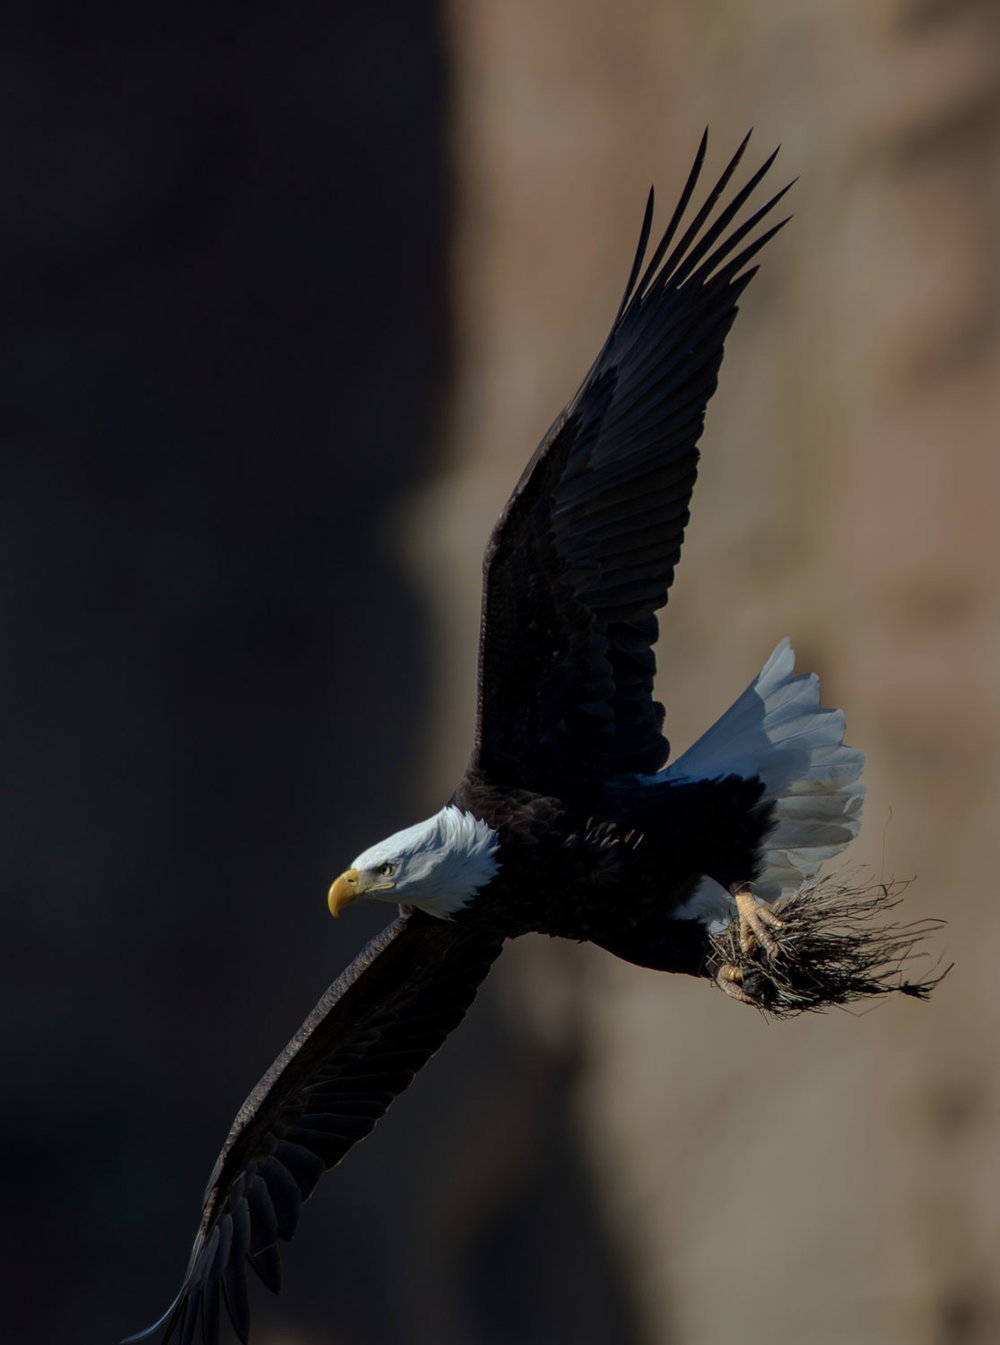 bald eagle getting nesting material and a bit of fish at Smith Rock State Park courtesy of Jack Wills Photography